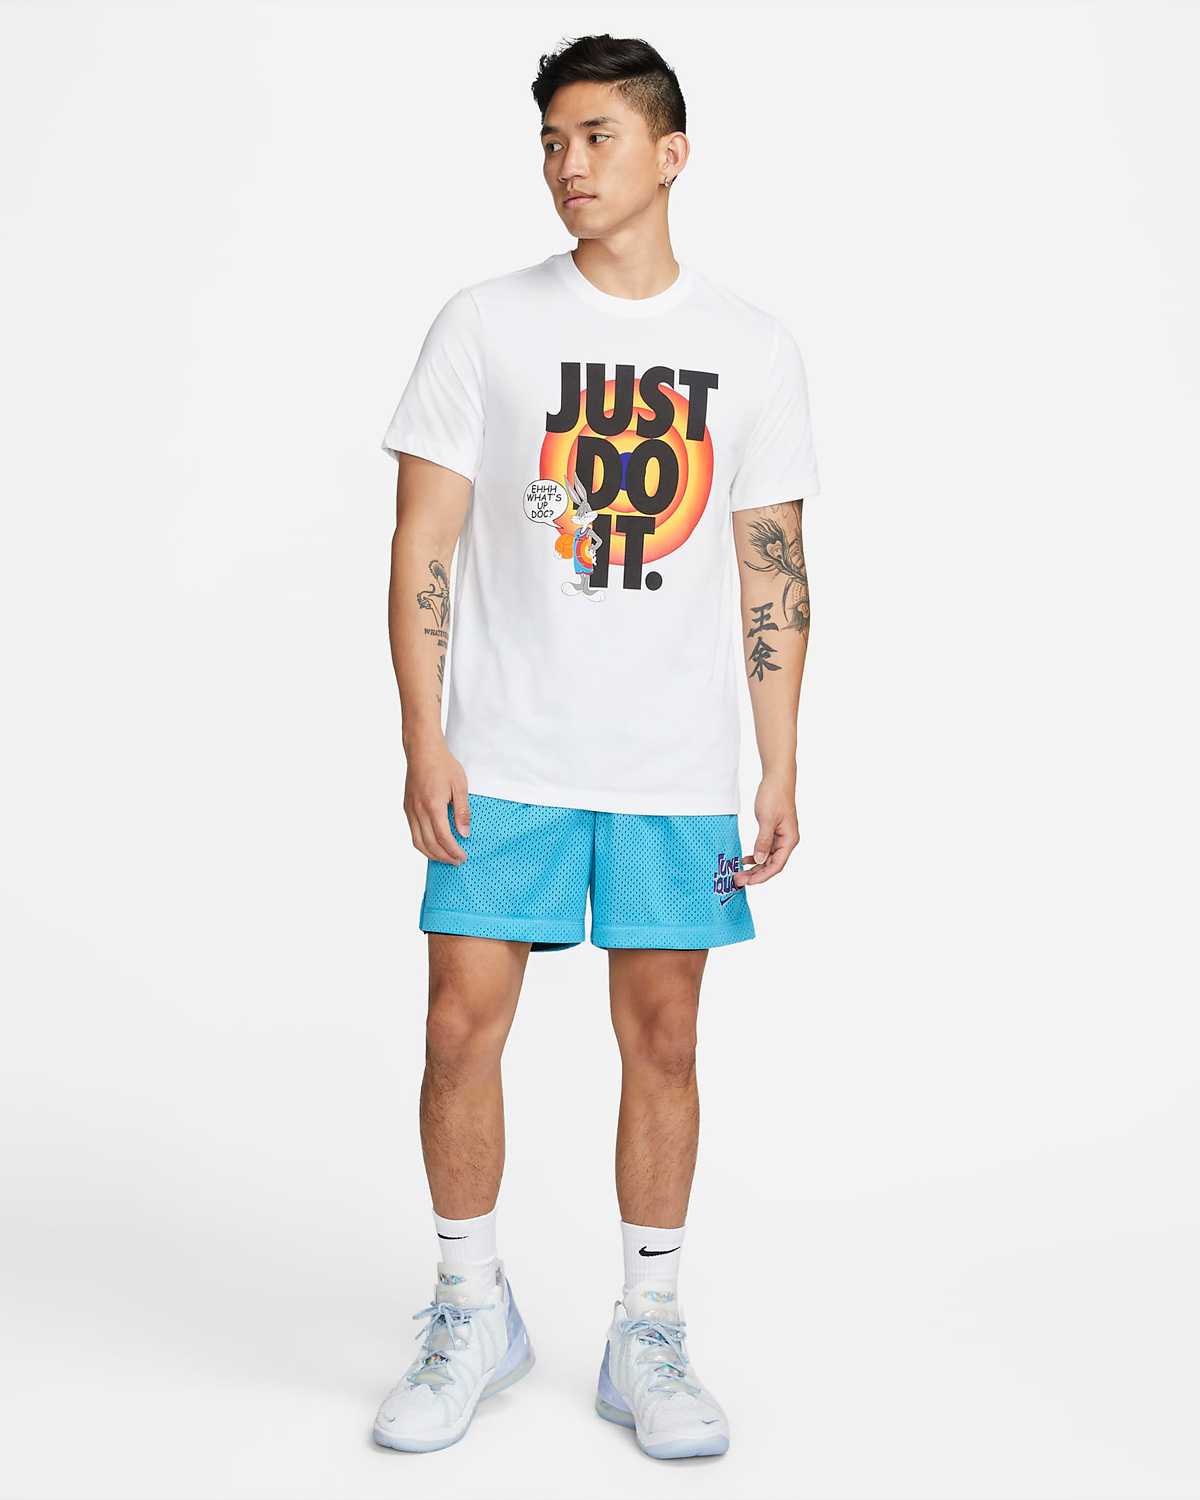 nike-space-jam-a-new-legacy-jdi-just-do-it-shirt-white-3